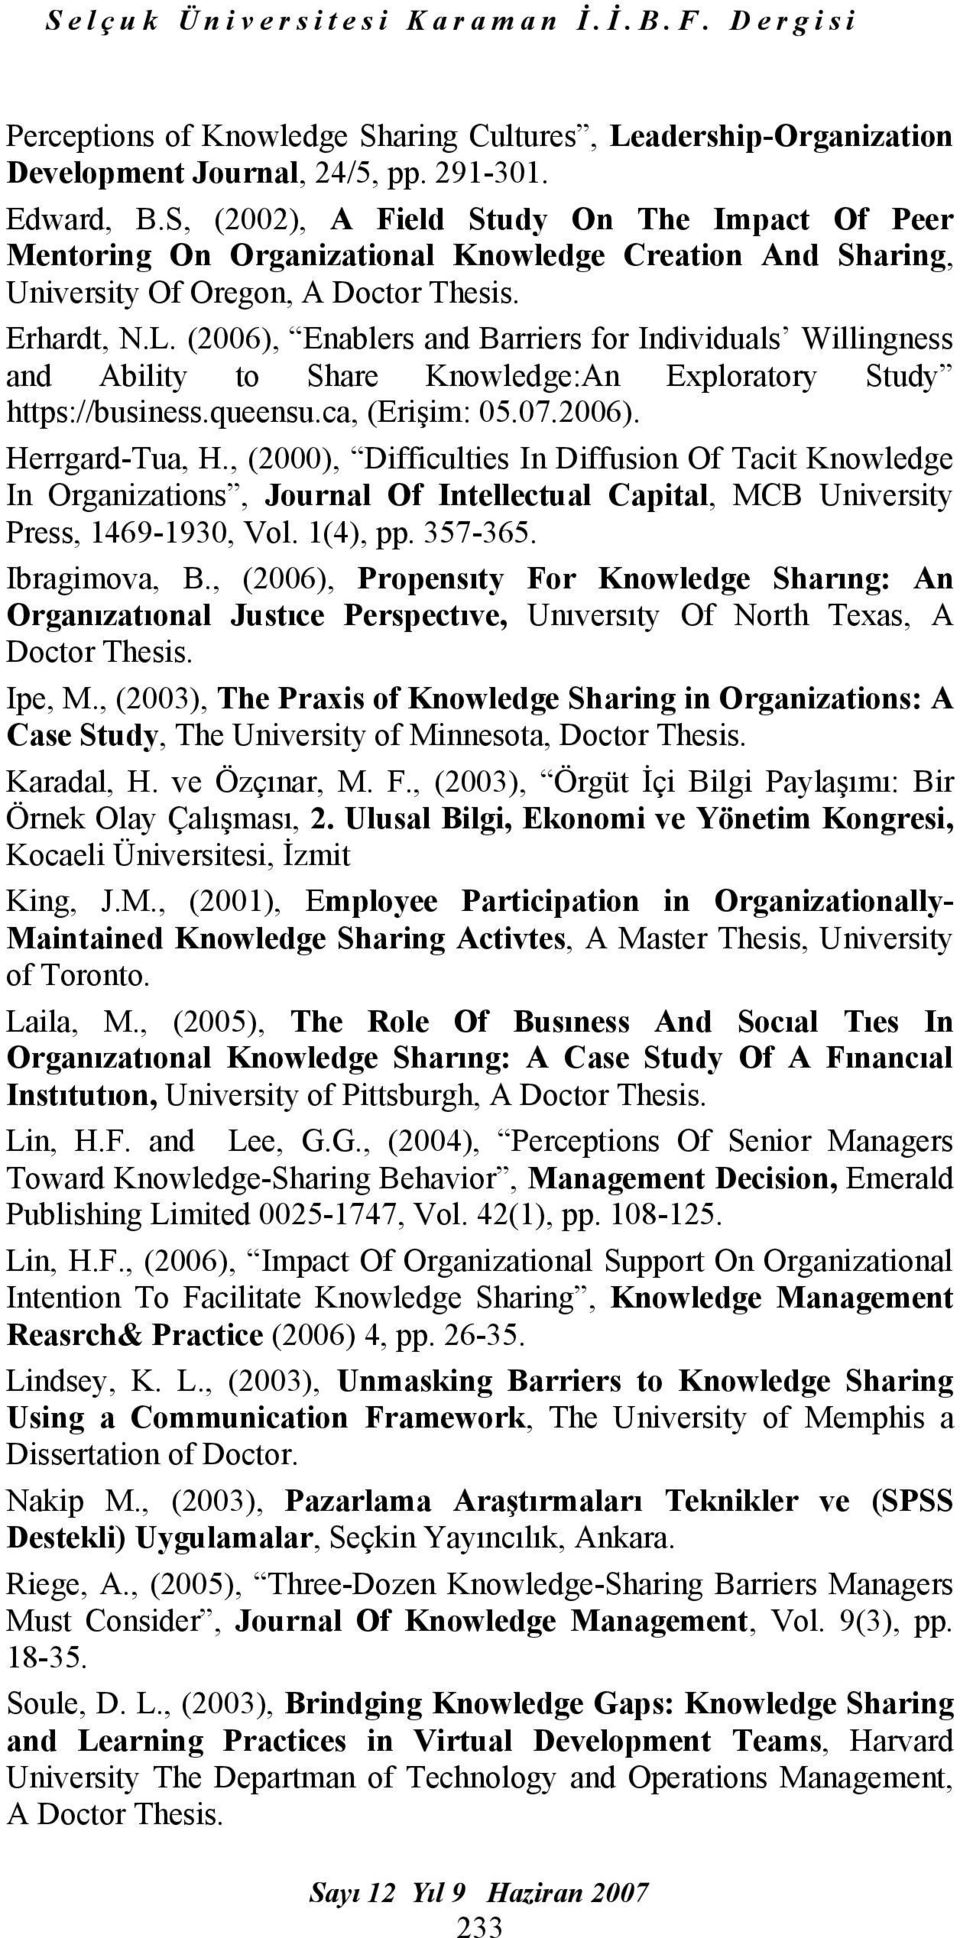 (2006), Enablers and Barriers for Individuals Willingness and Ability to Share Knowledge:An Exploratory Study https://business.queensu.ca, (Erişim: 05.07.2006). Herrgard-Tua, H.